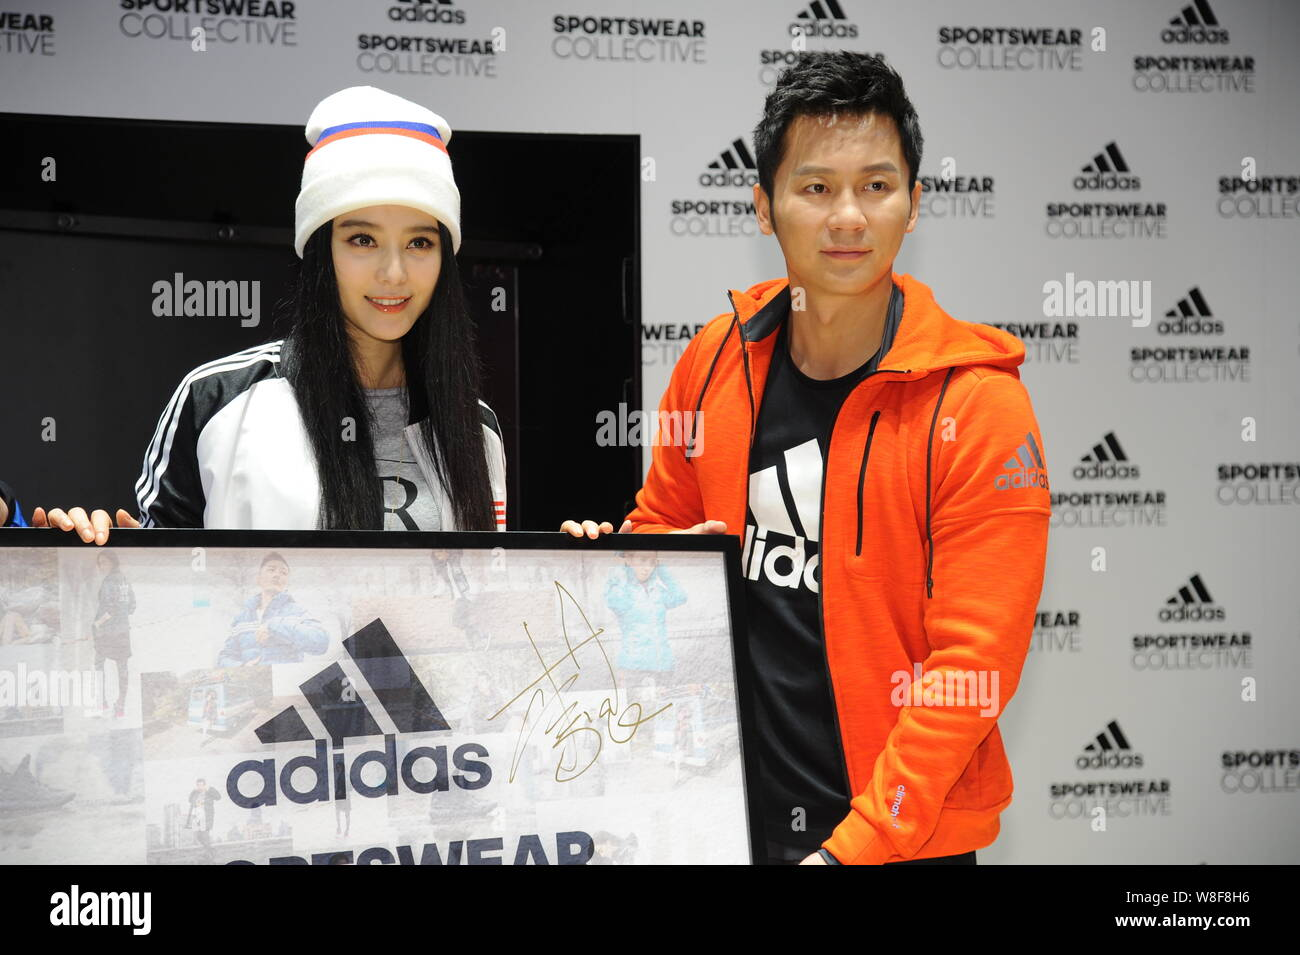 adidas sportswear collective store